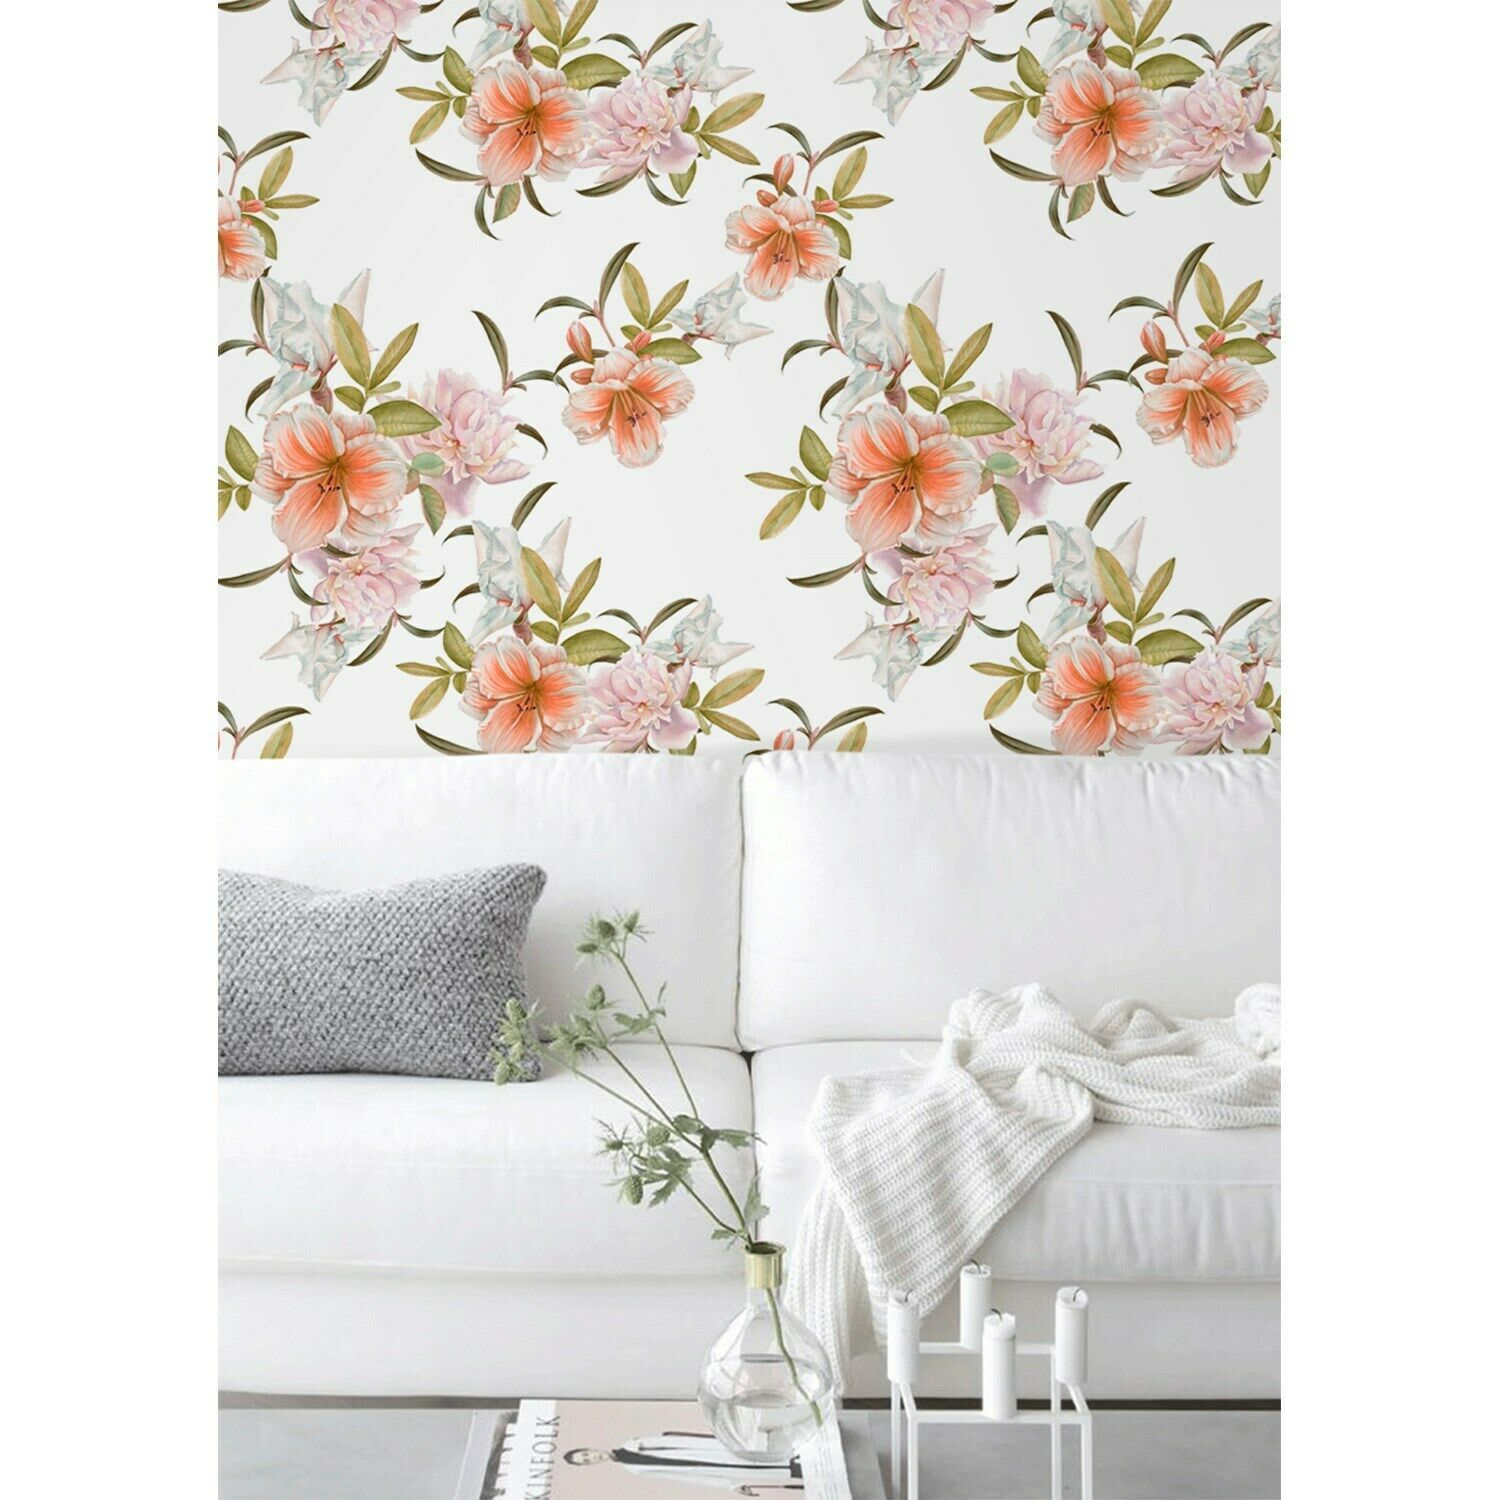 Spring floral wall mural removable wallpaper flowers Girly Powder room decor